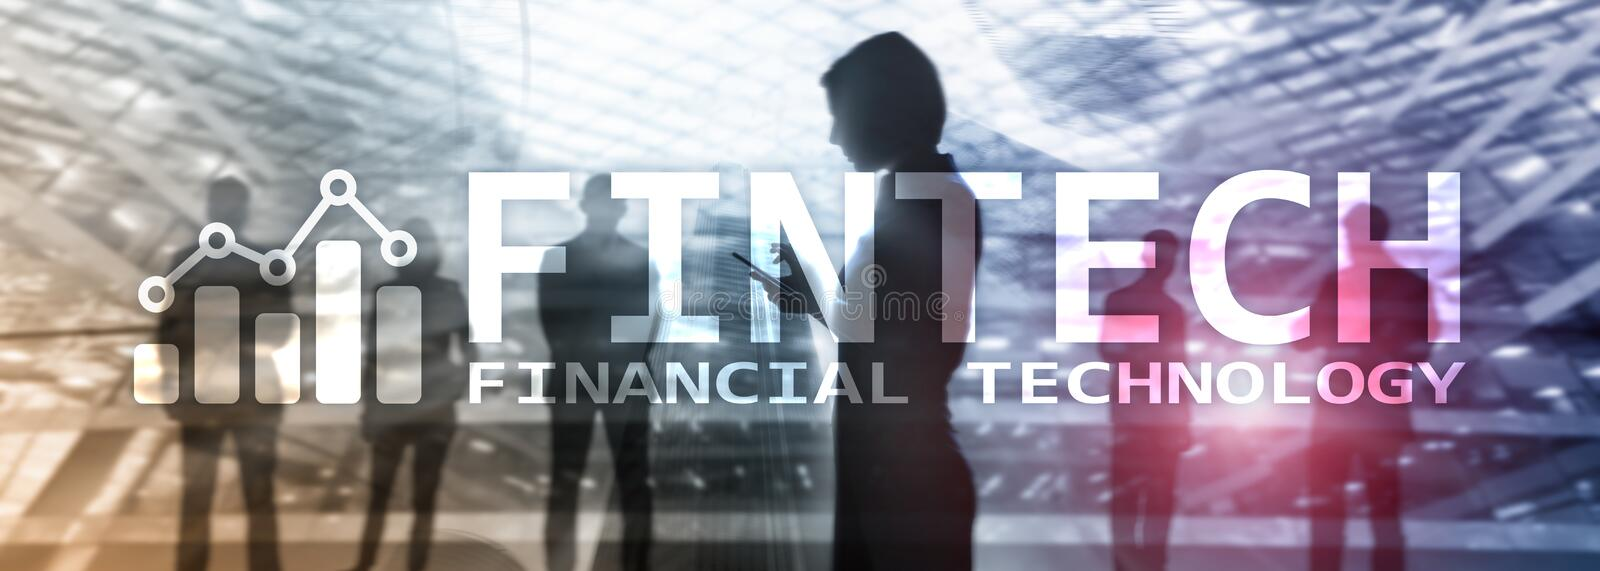 FINTECH - Financial technology, global business and information Internet communication technology. Skyscrapers background. Hi-tech stock images